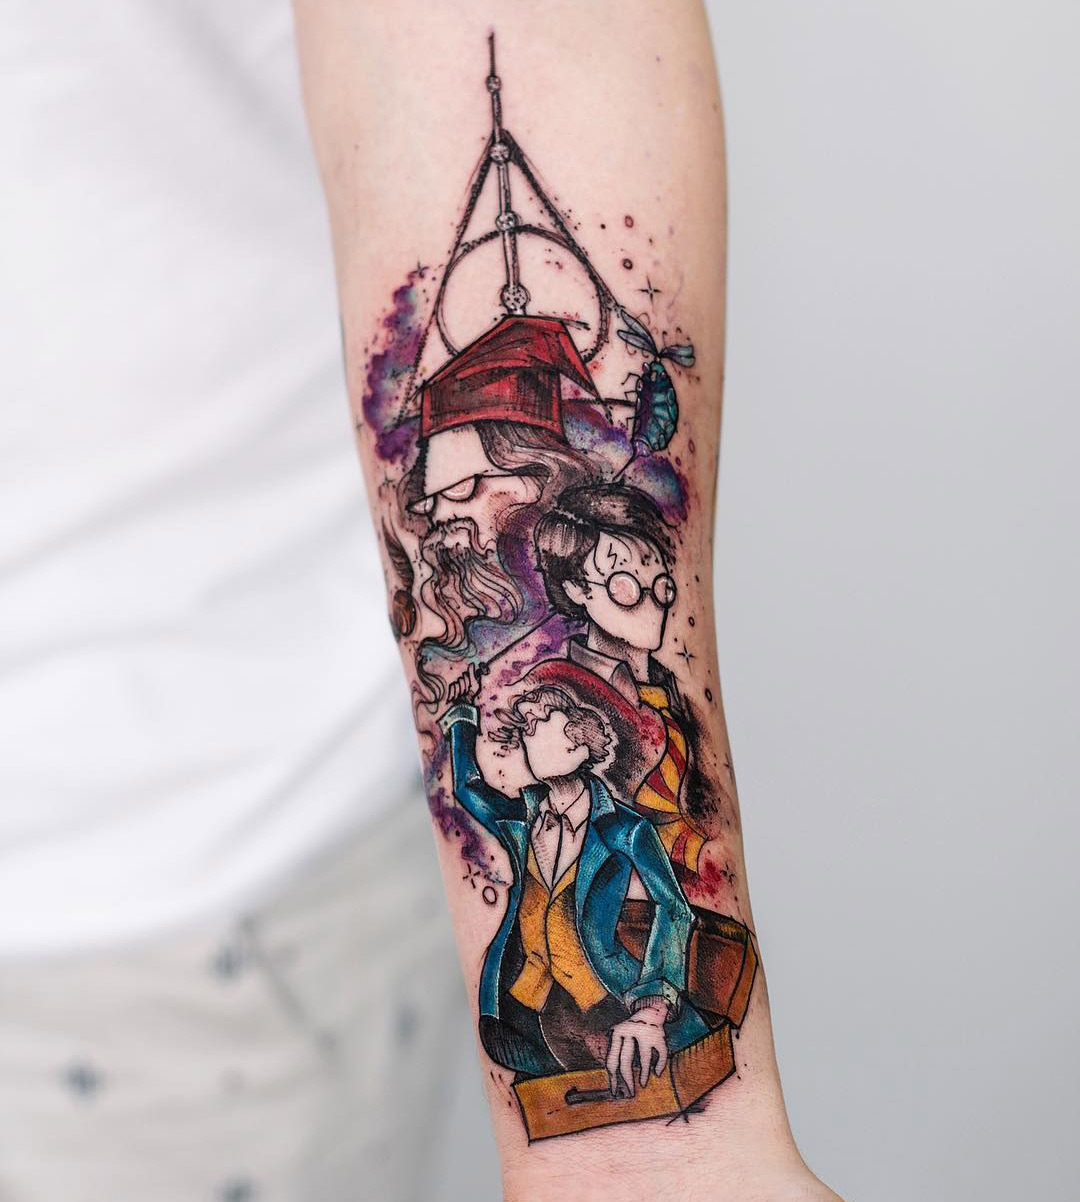 Best Harry Potter Tattoos: Harry Potter Tattoo On Girls Forearm